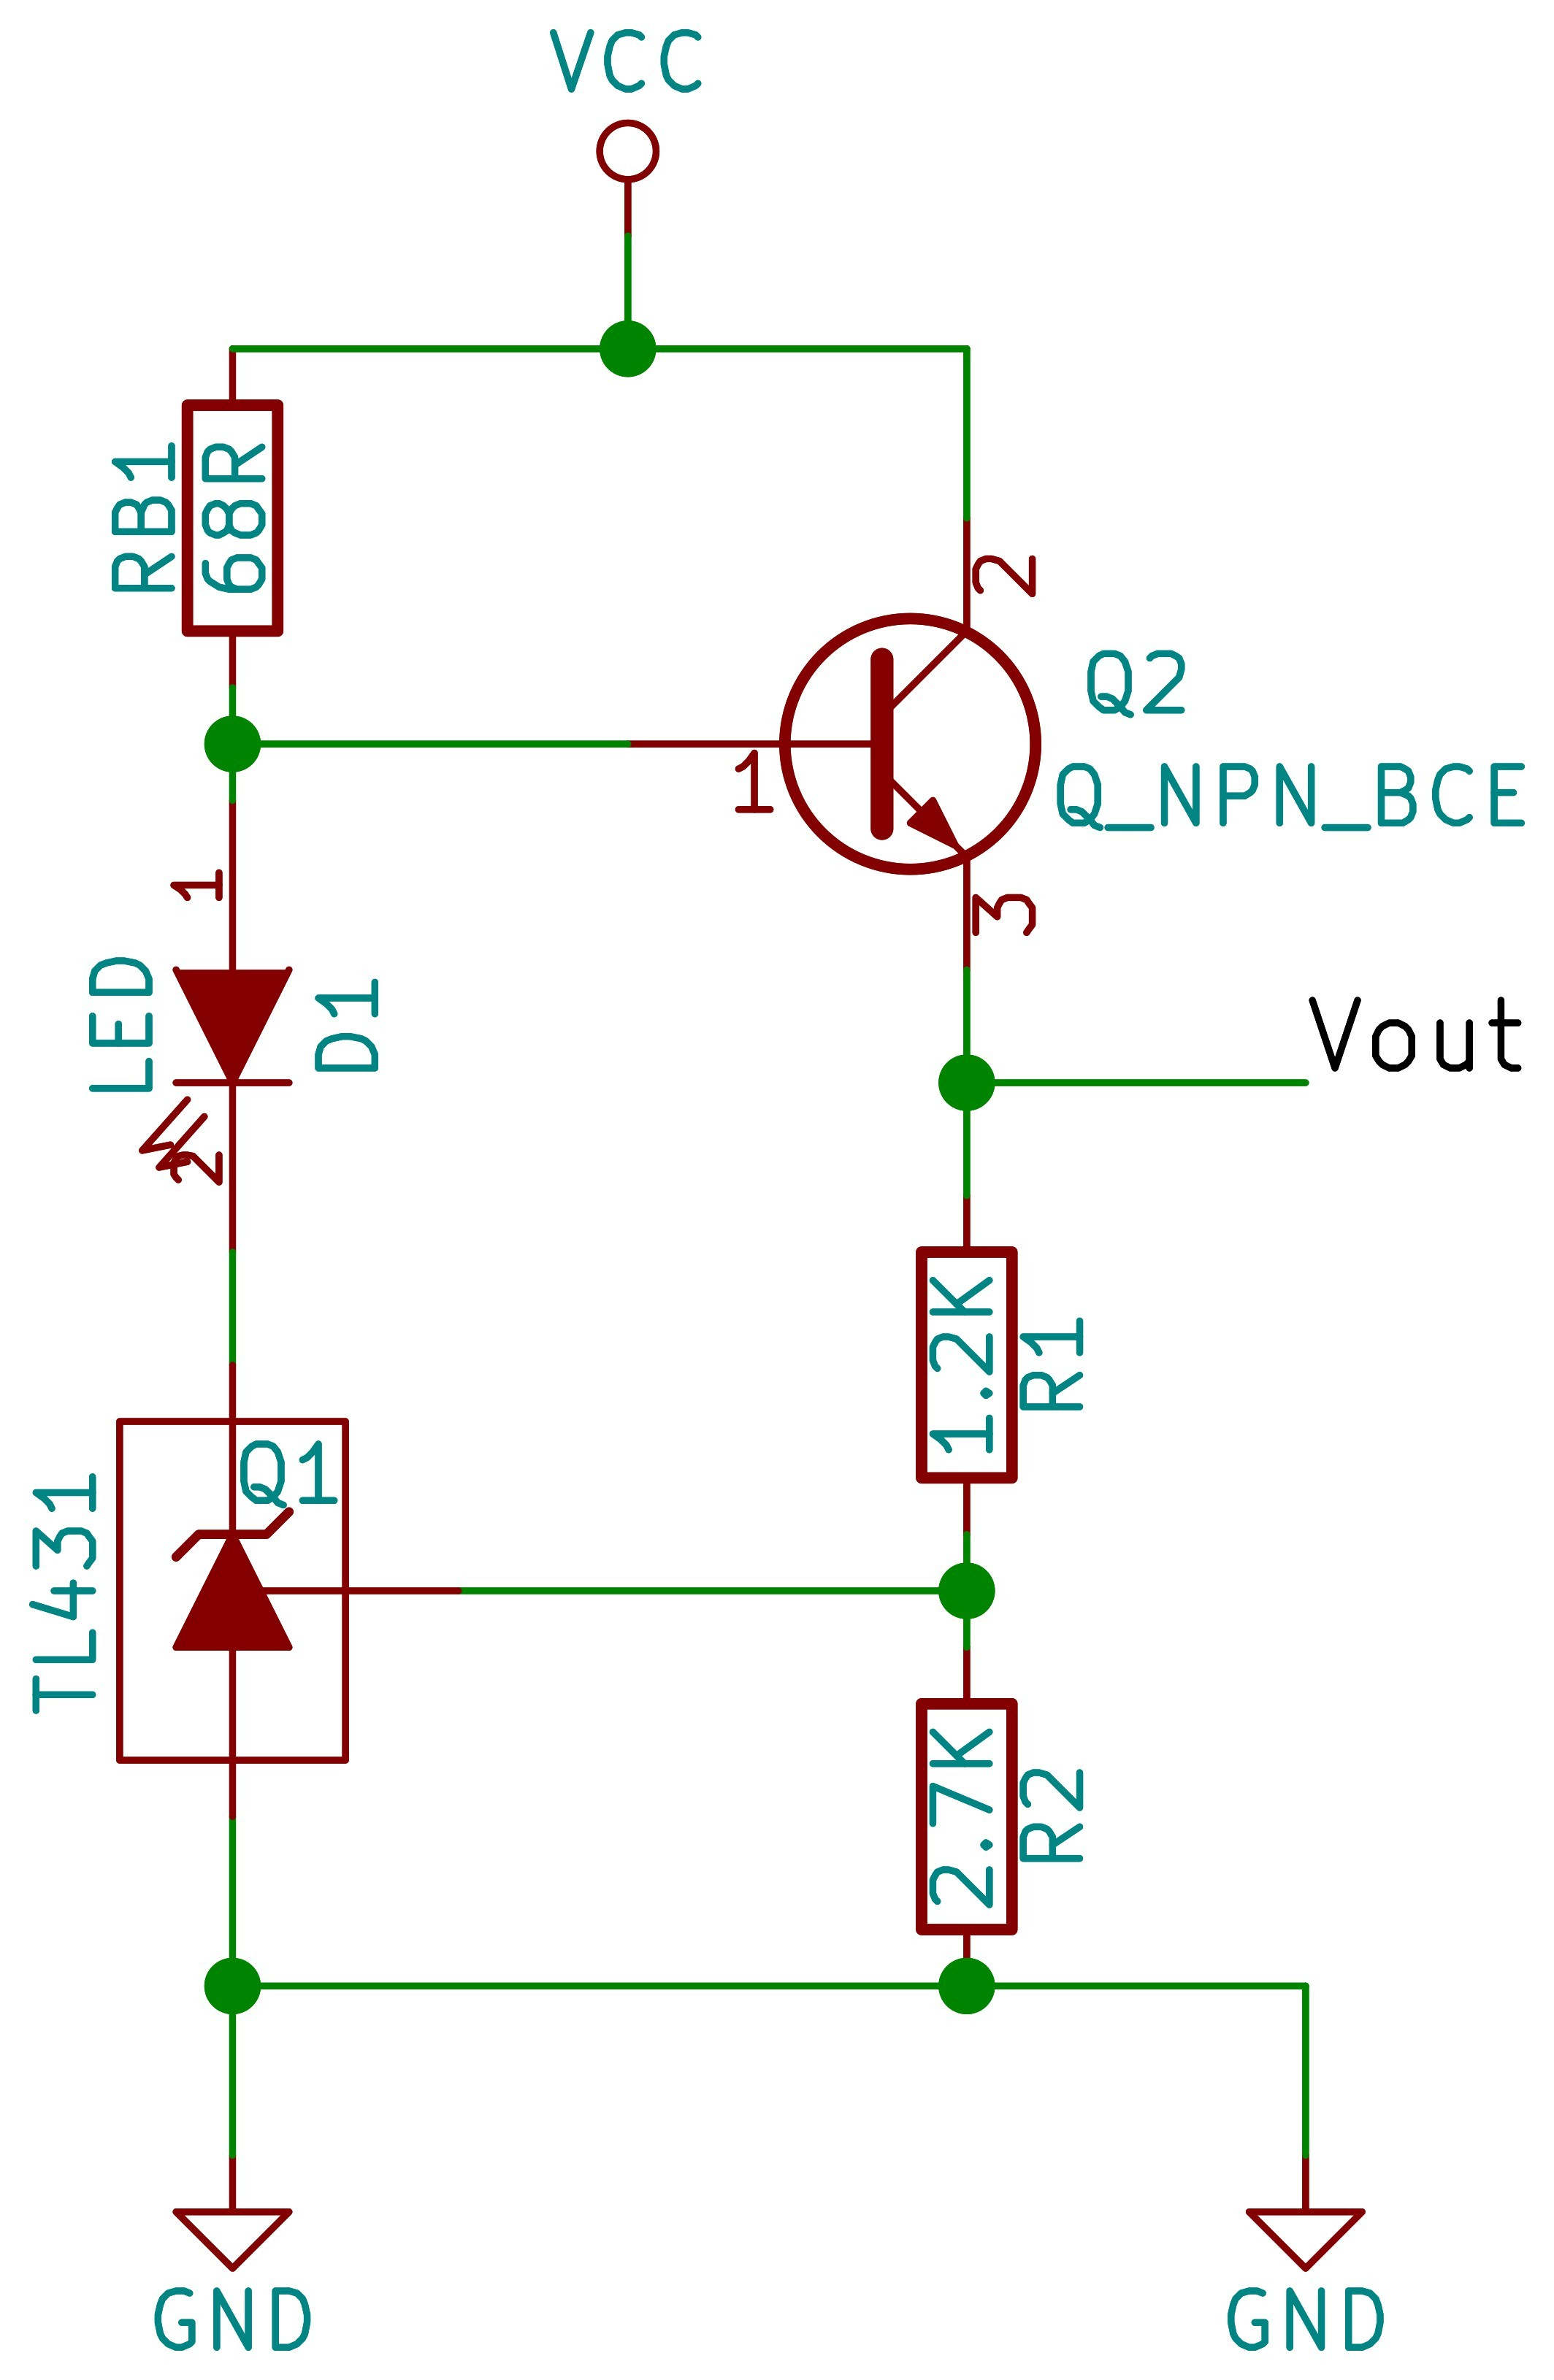 Car Battery Charger Circuit Diagram Cell Phone Charger Circuit Diagram Pdf Best Stunning Schematic Of Car Battery Charger Circuit Diagram